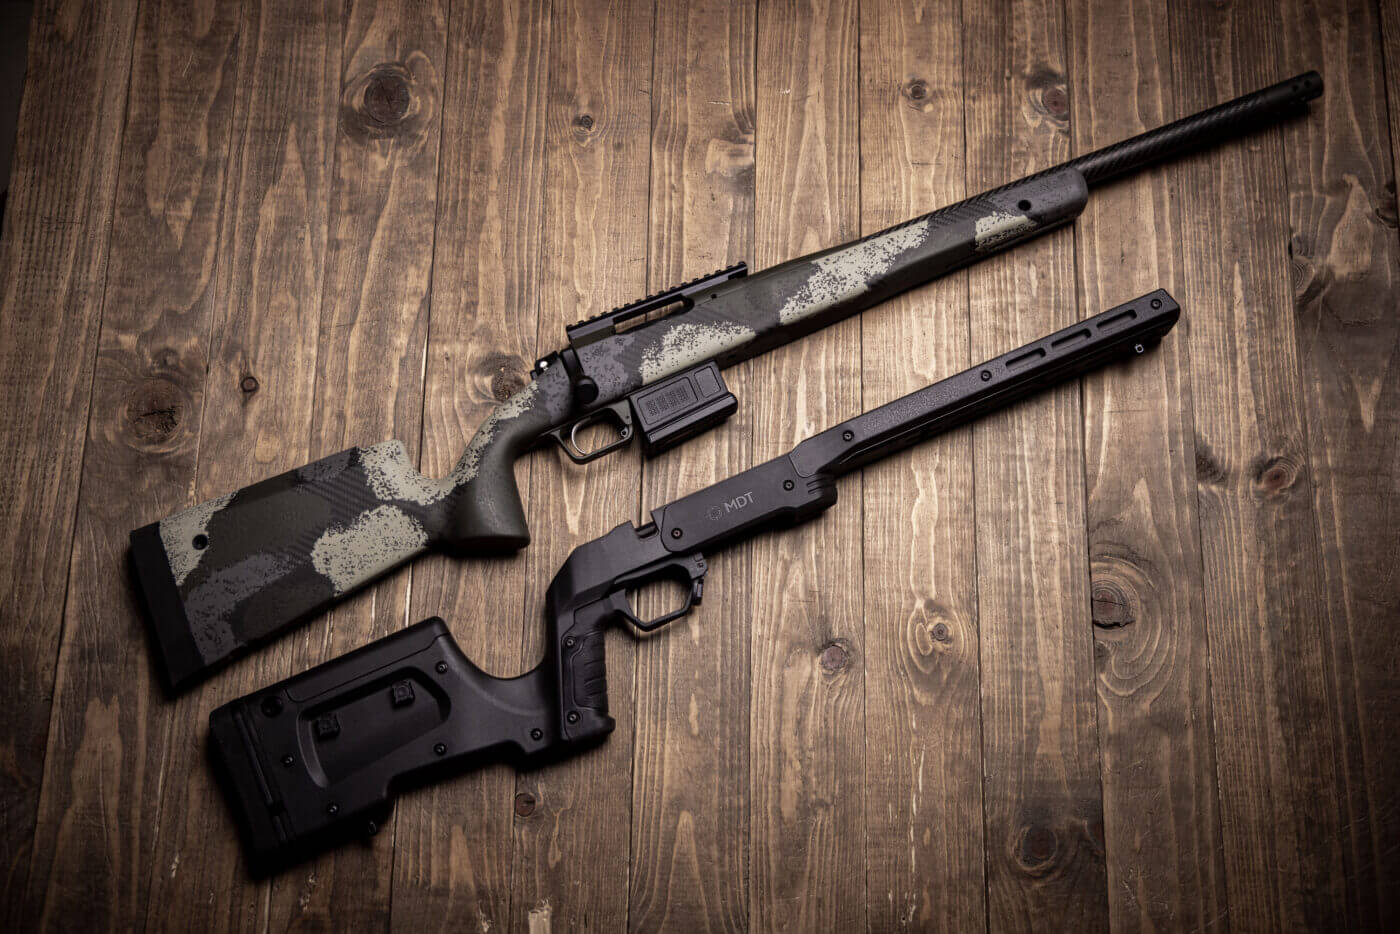 MDT chassis for the Model 2020 Waypoint rifle